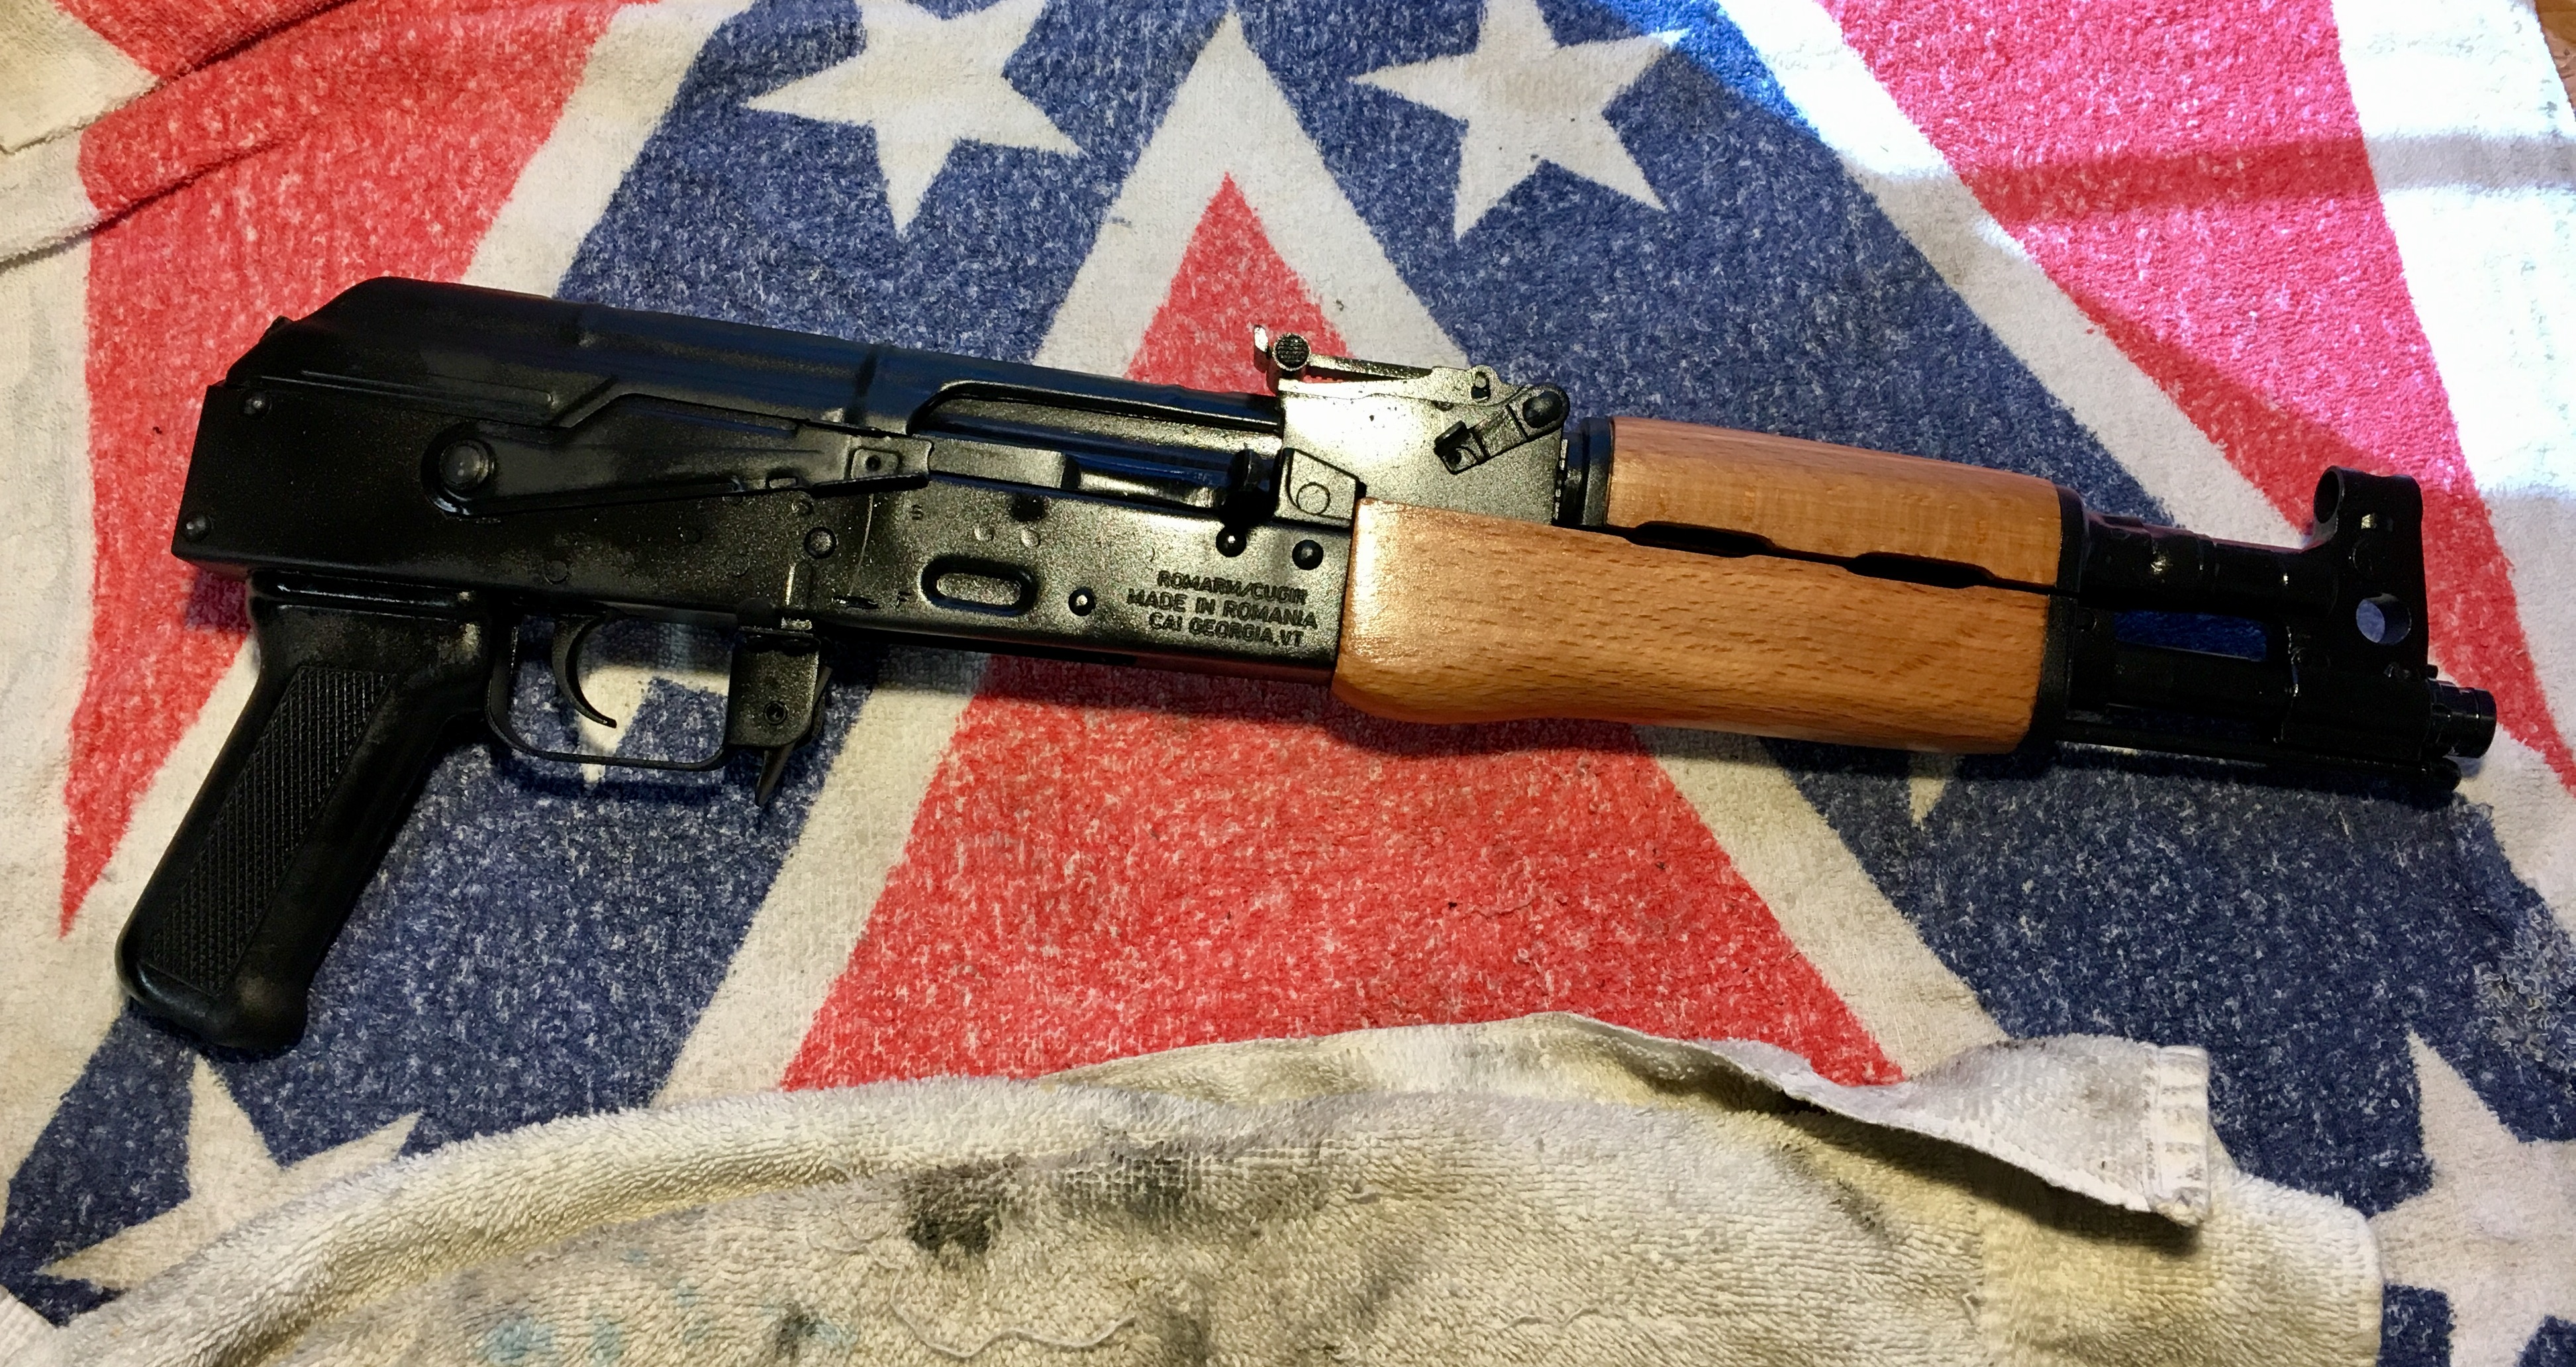 DRACO DRACO DRACO | Mississippi Gun Owners - Community for